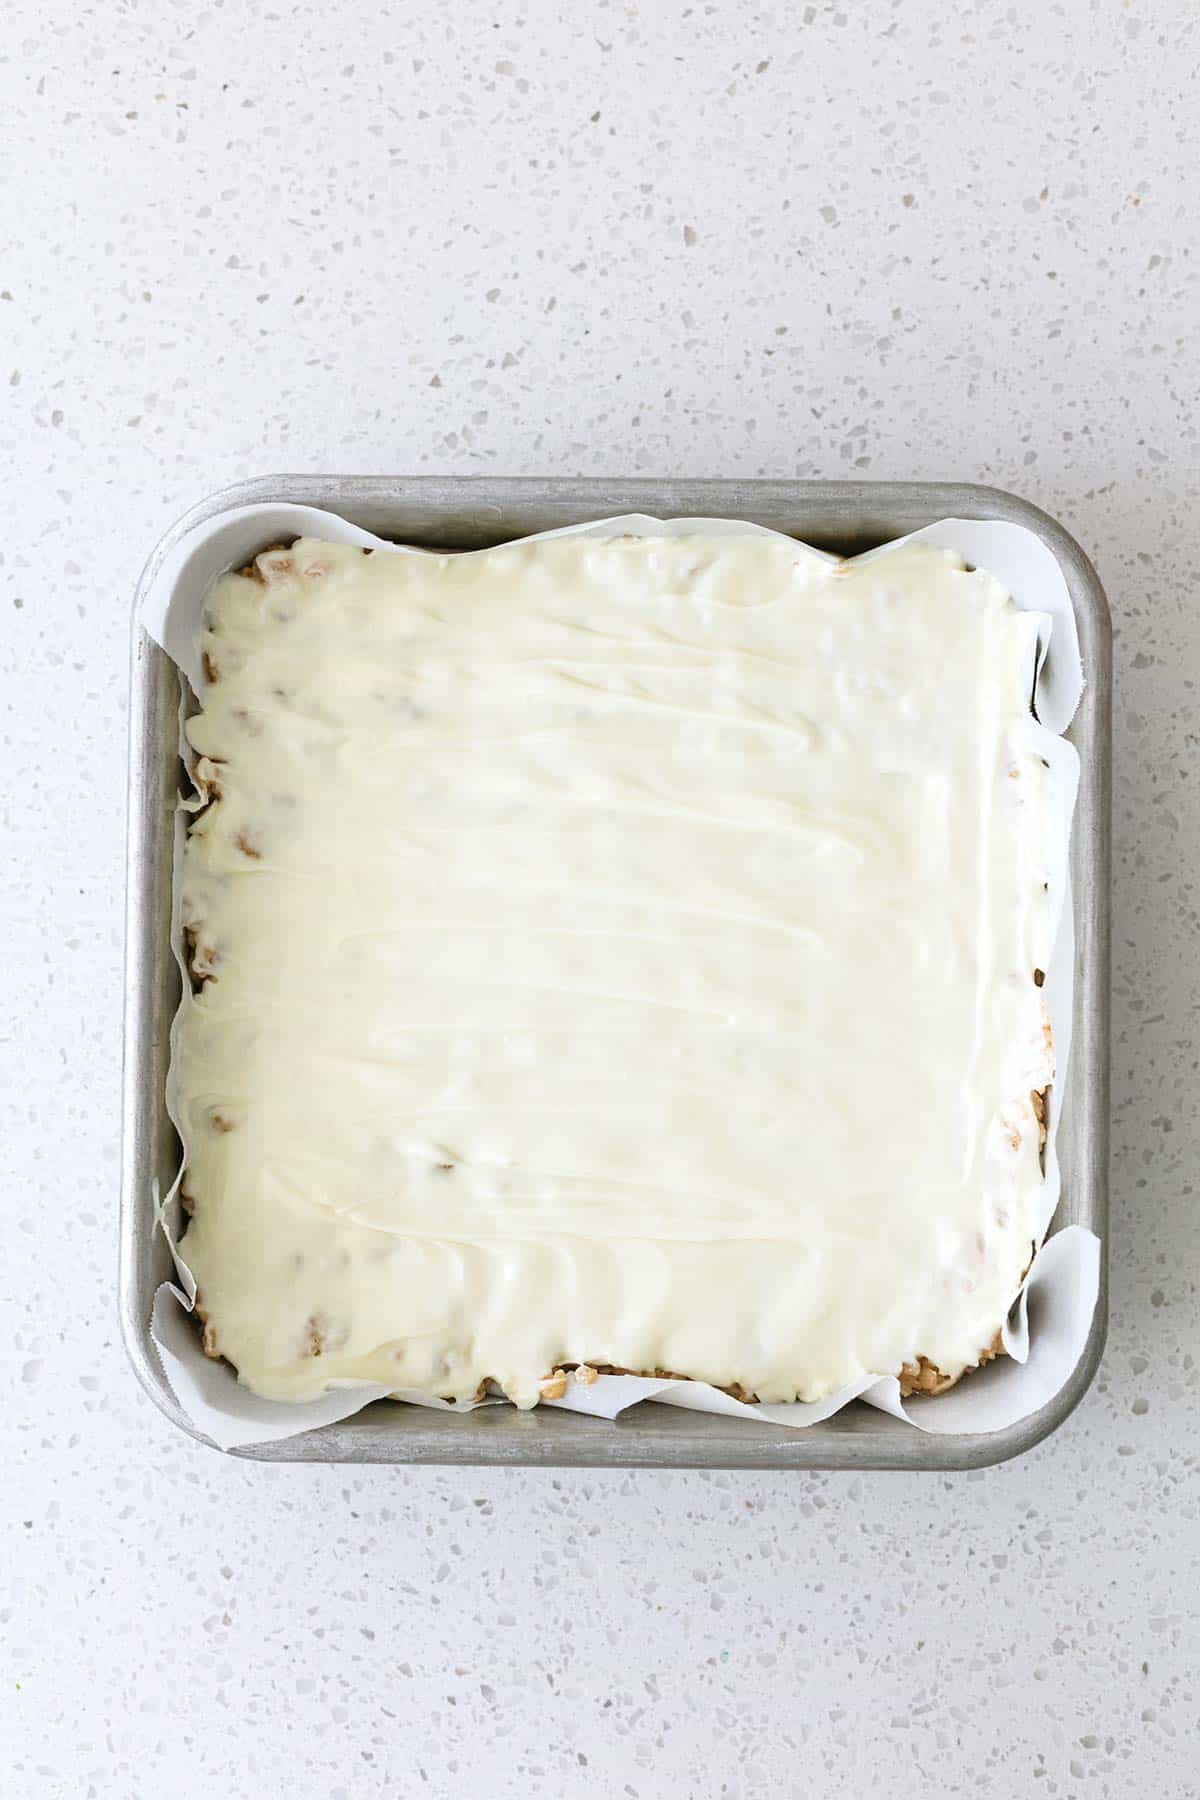 white chocolate melted in square pan